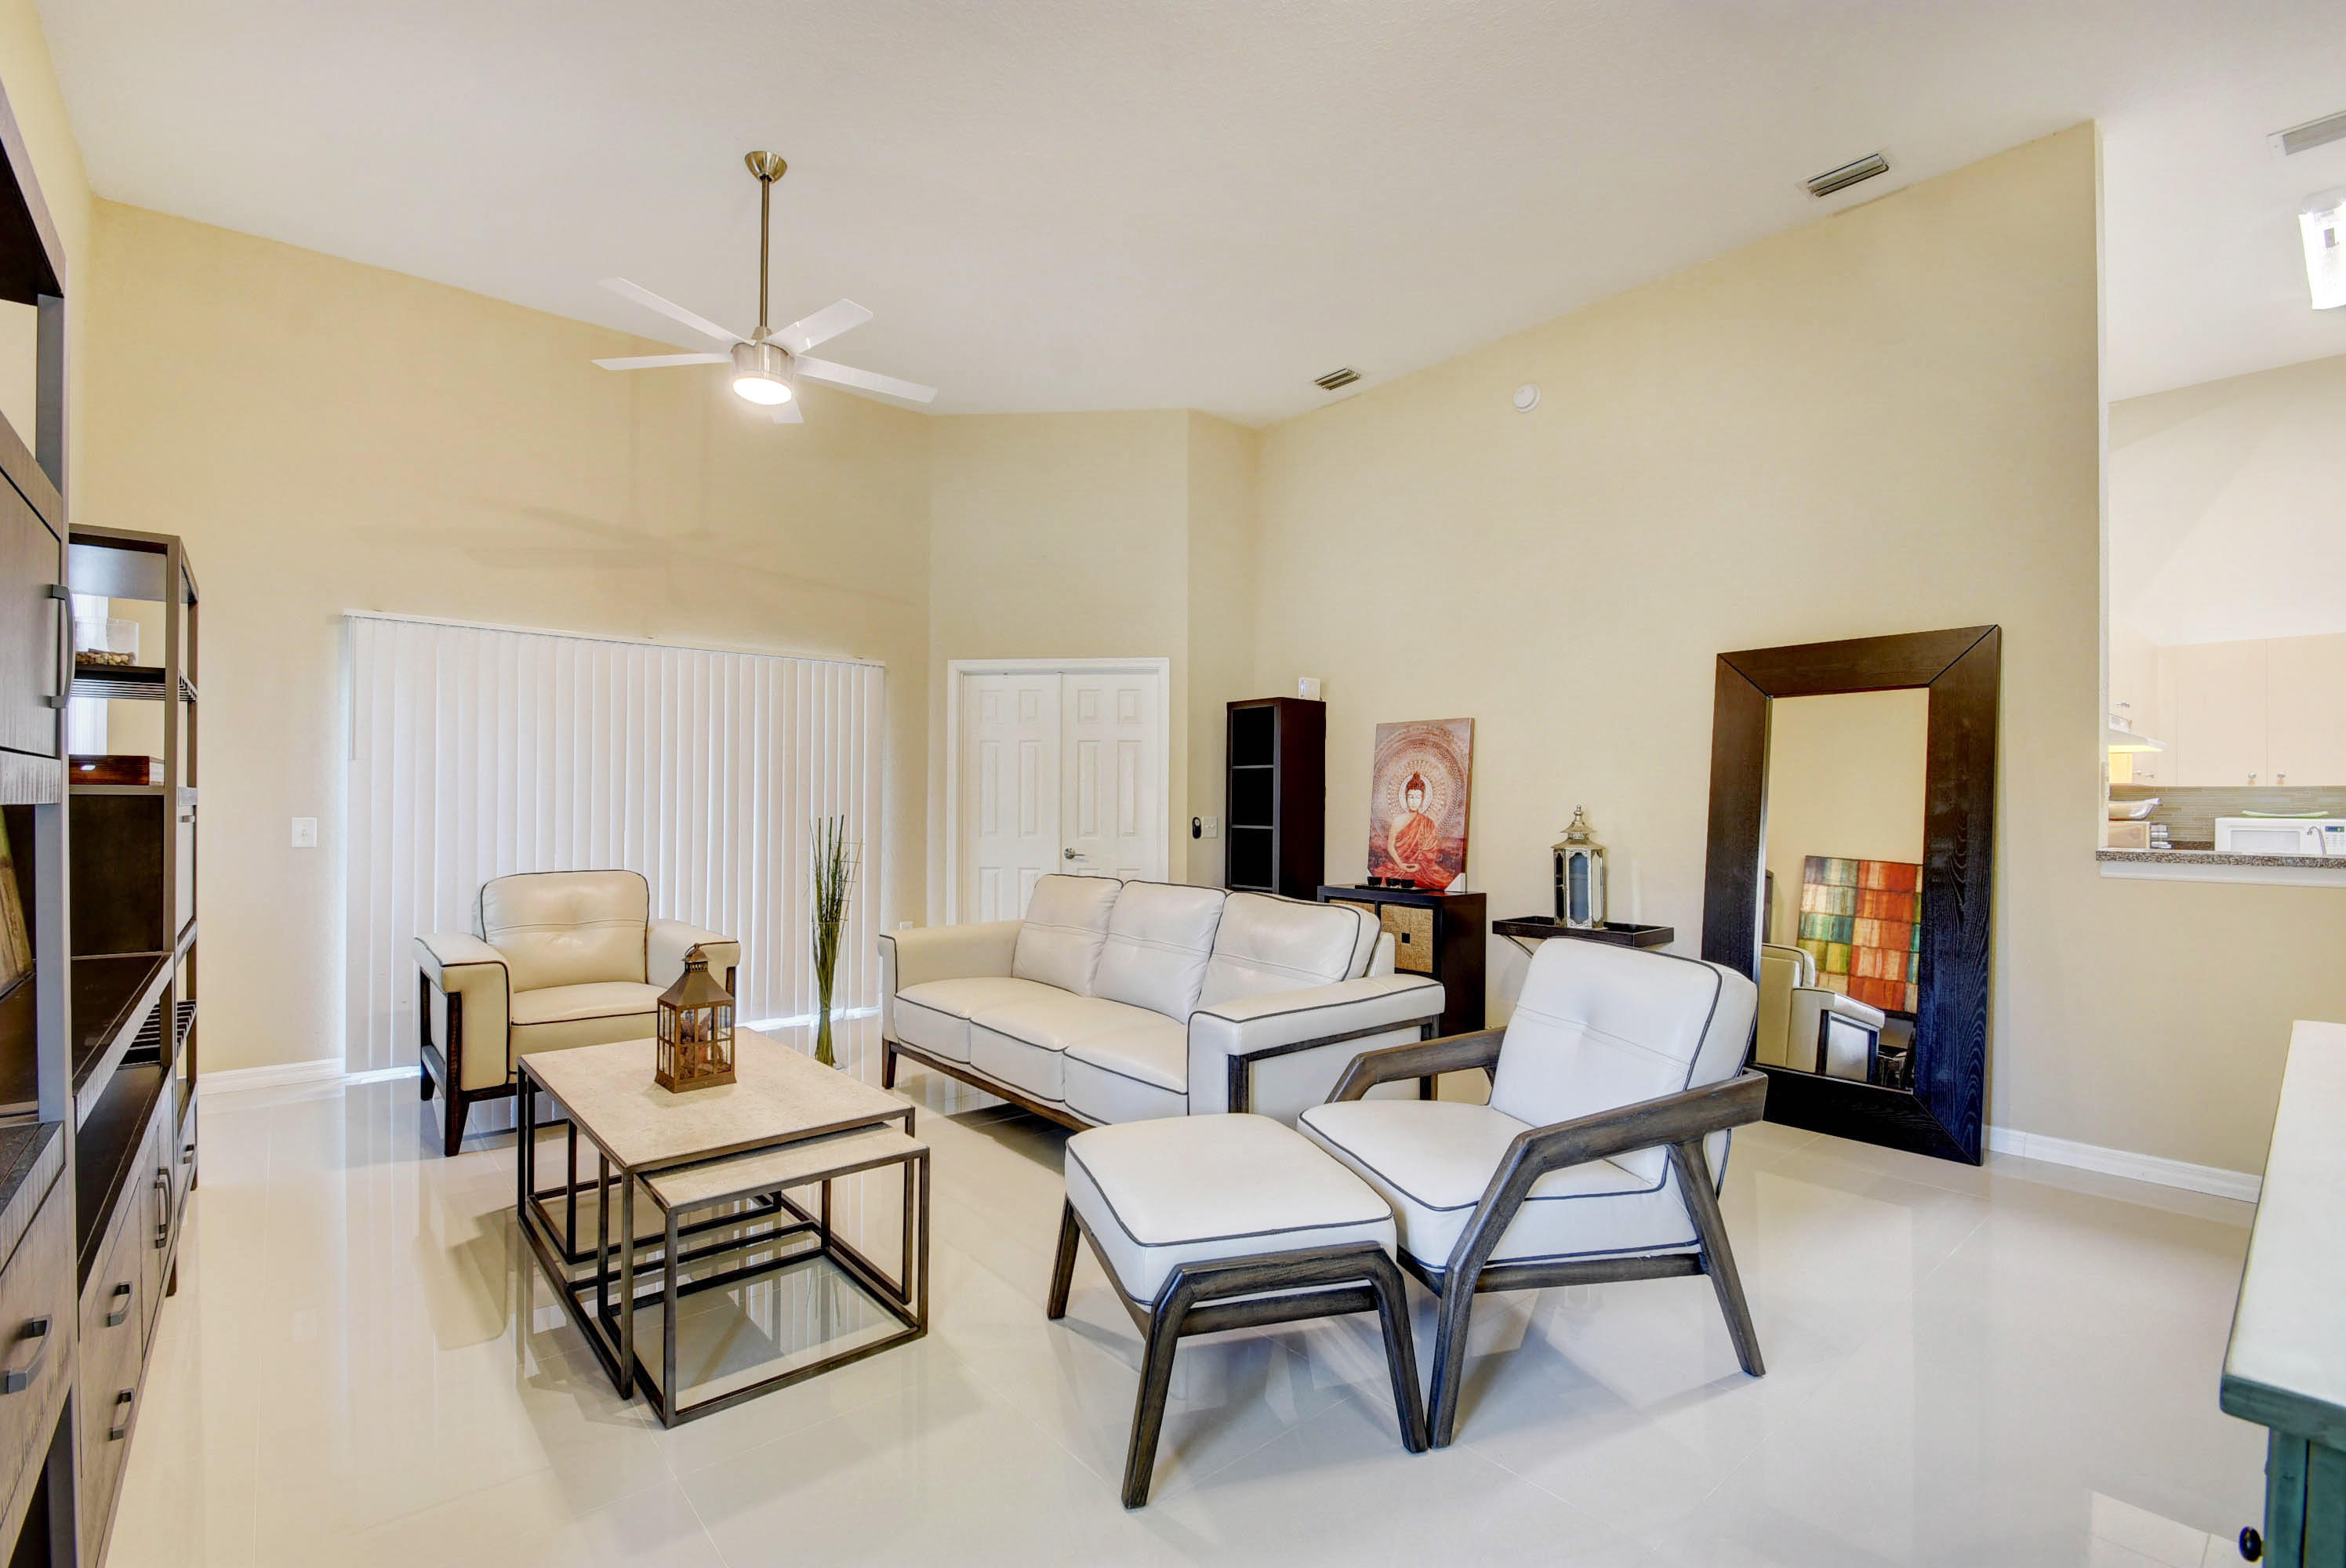 Home for sale in Kensington Of Royal Royal Palm Beach Florida